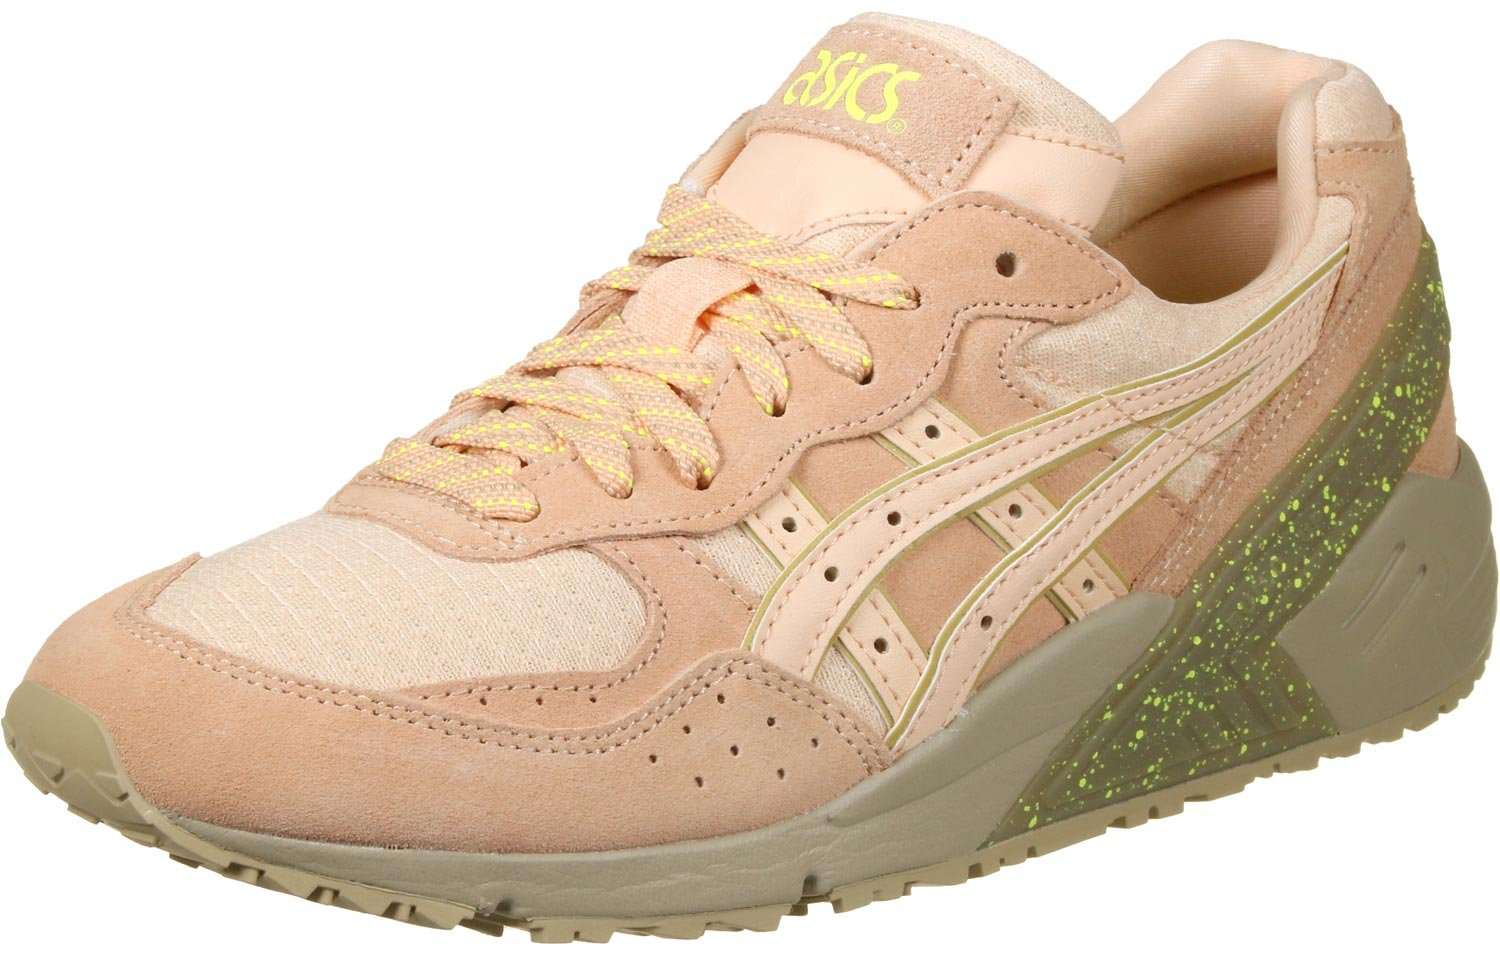 Asics - Gel Sight Bleached Apricot - Sneakers Damen